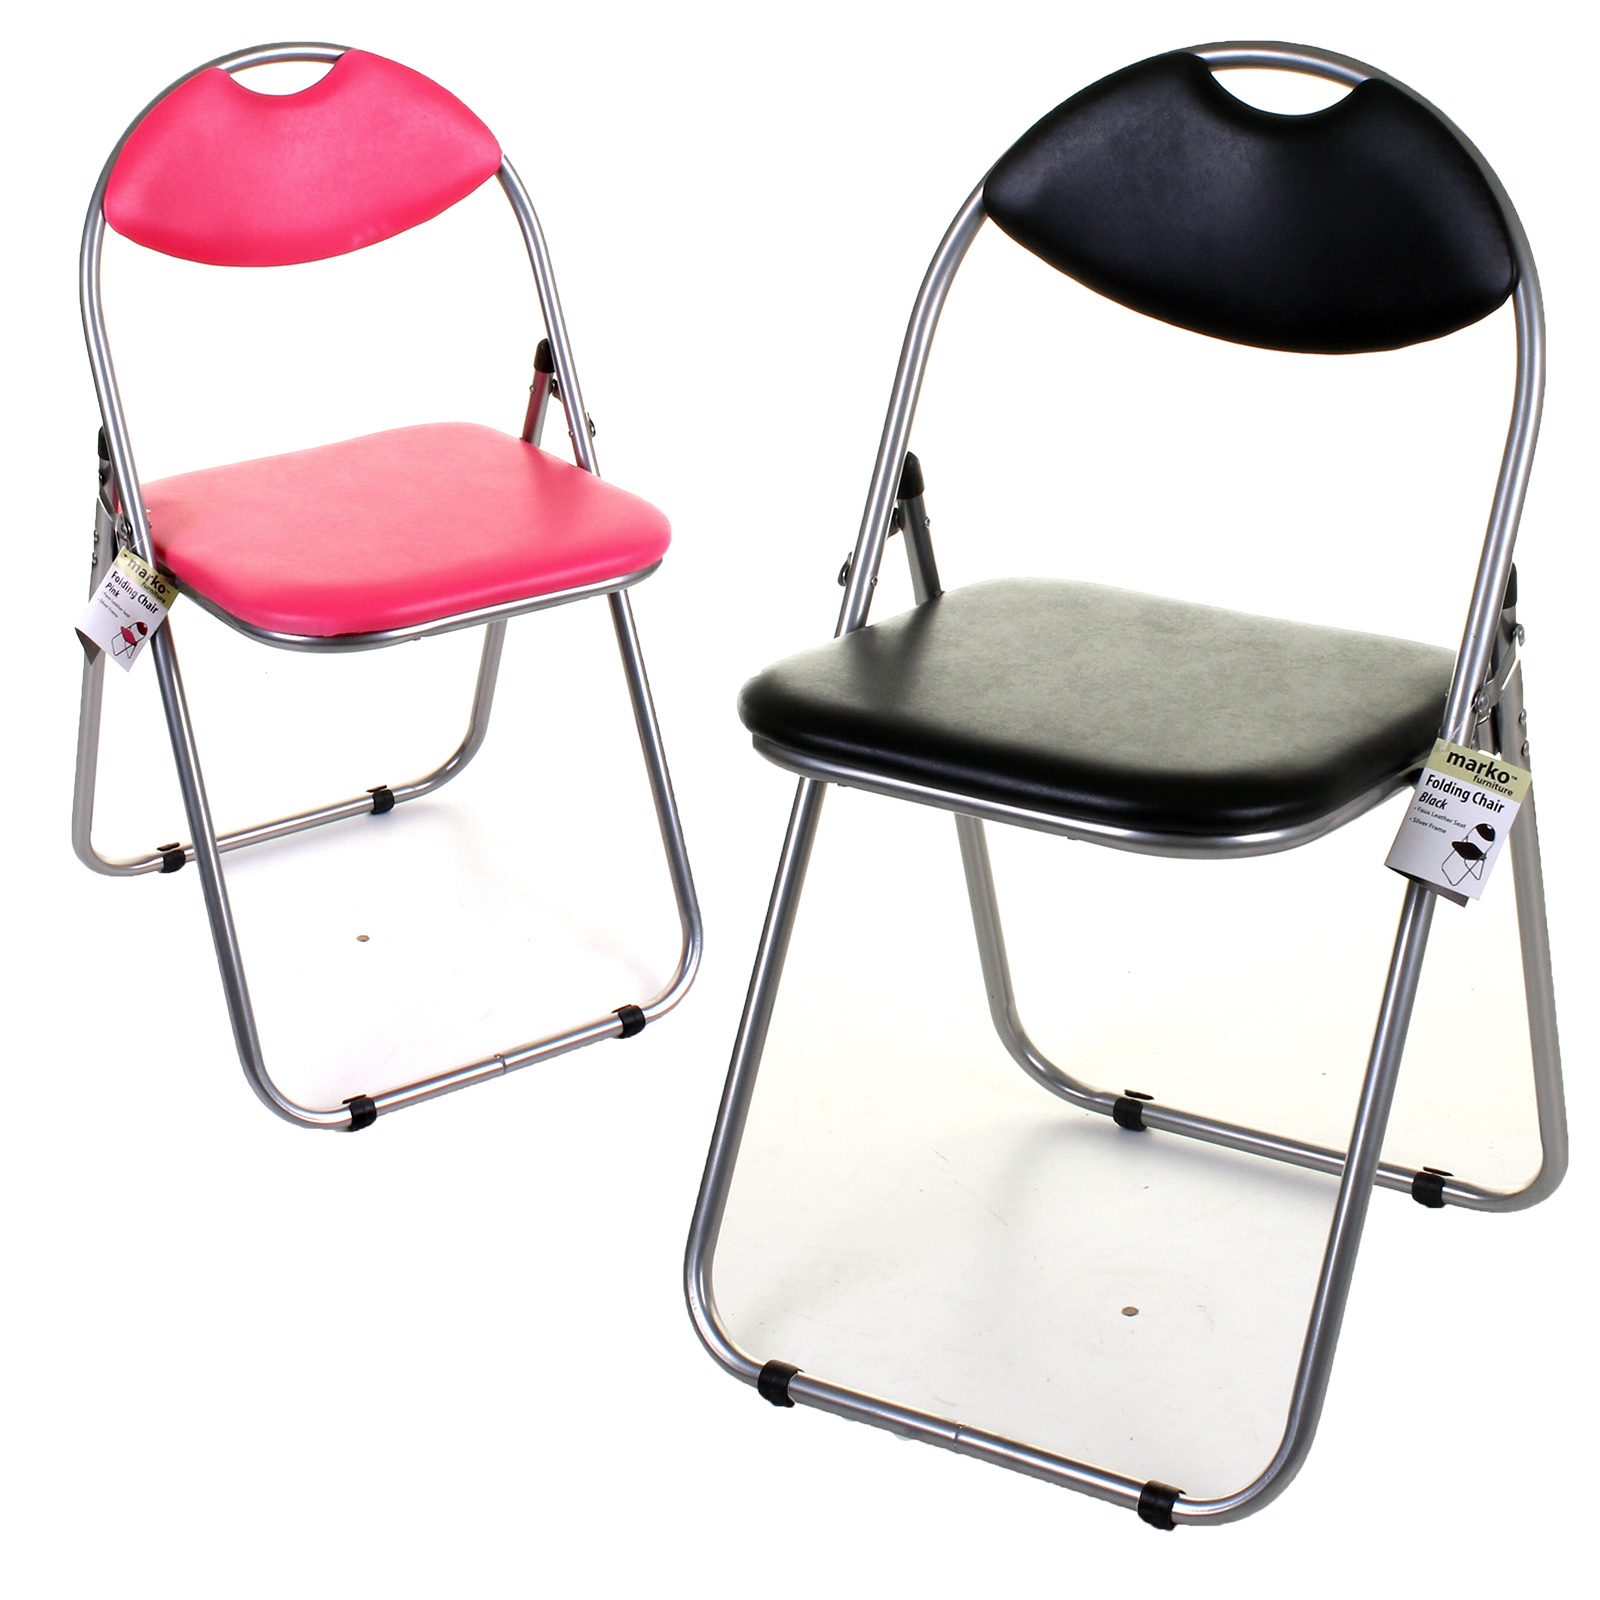 Folding Chair Faux Leather Padded Seat & Back Rest puter fice 4 Colo